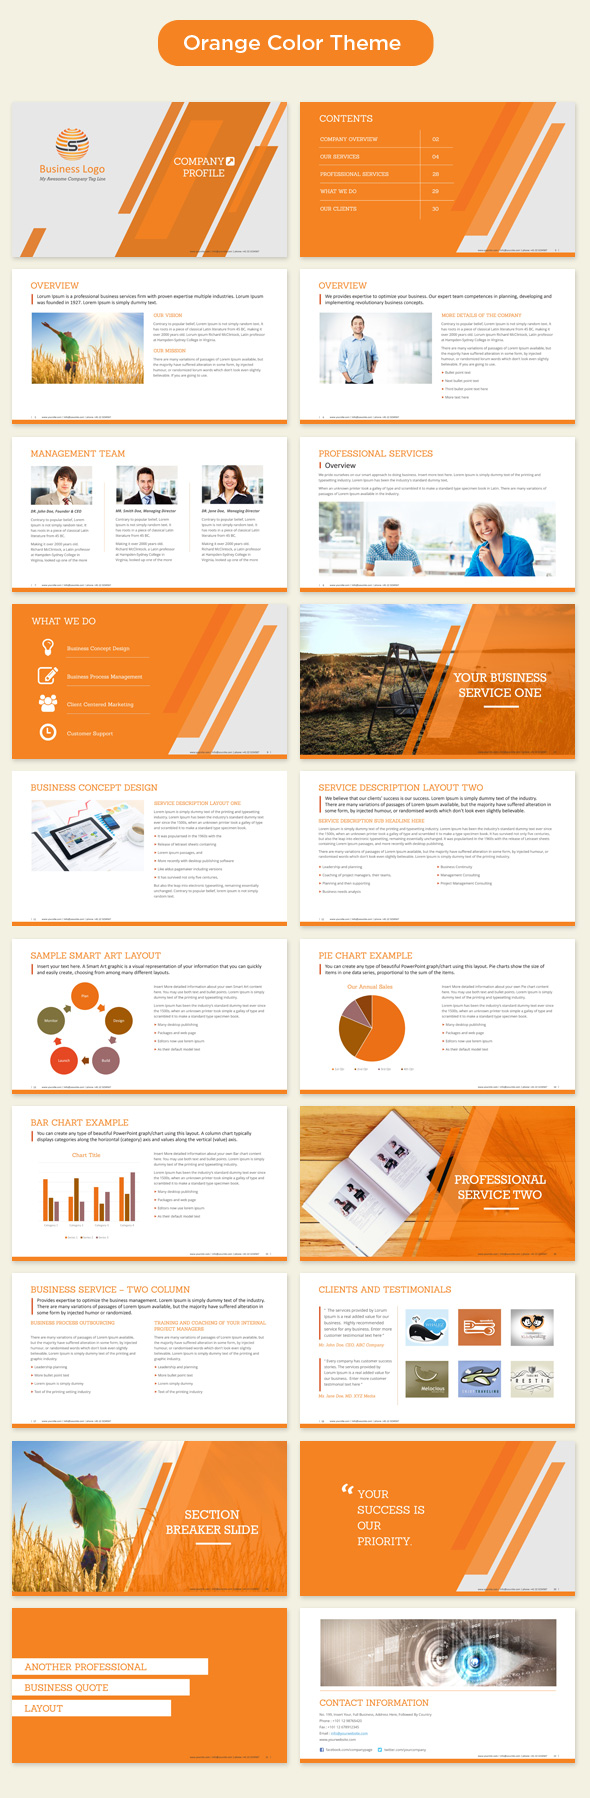 Company Profile PowerPoint Template Prime Template – Professional Business Profile